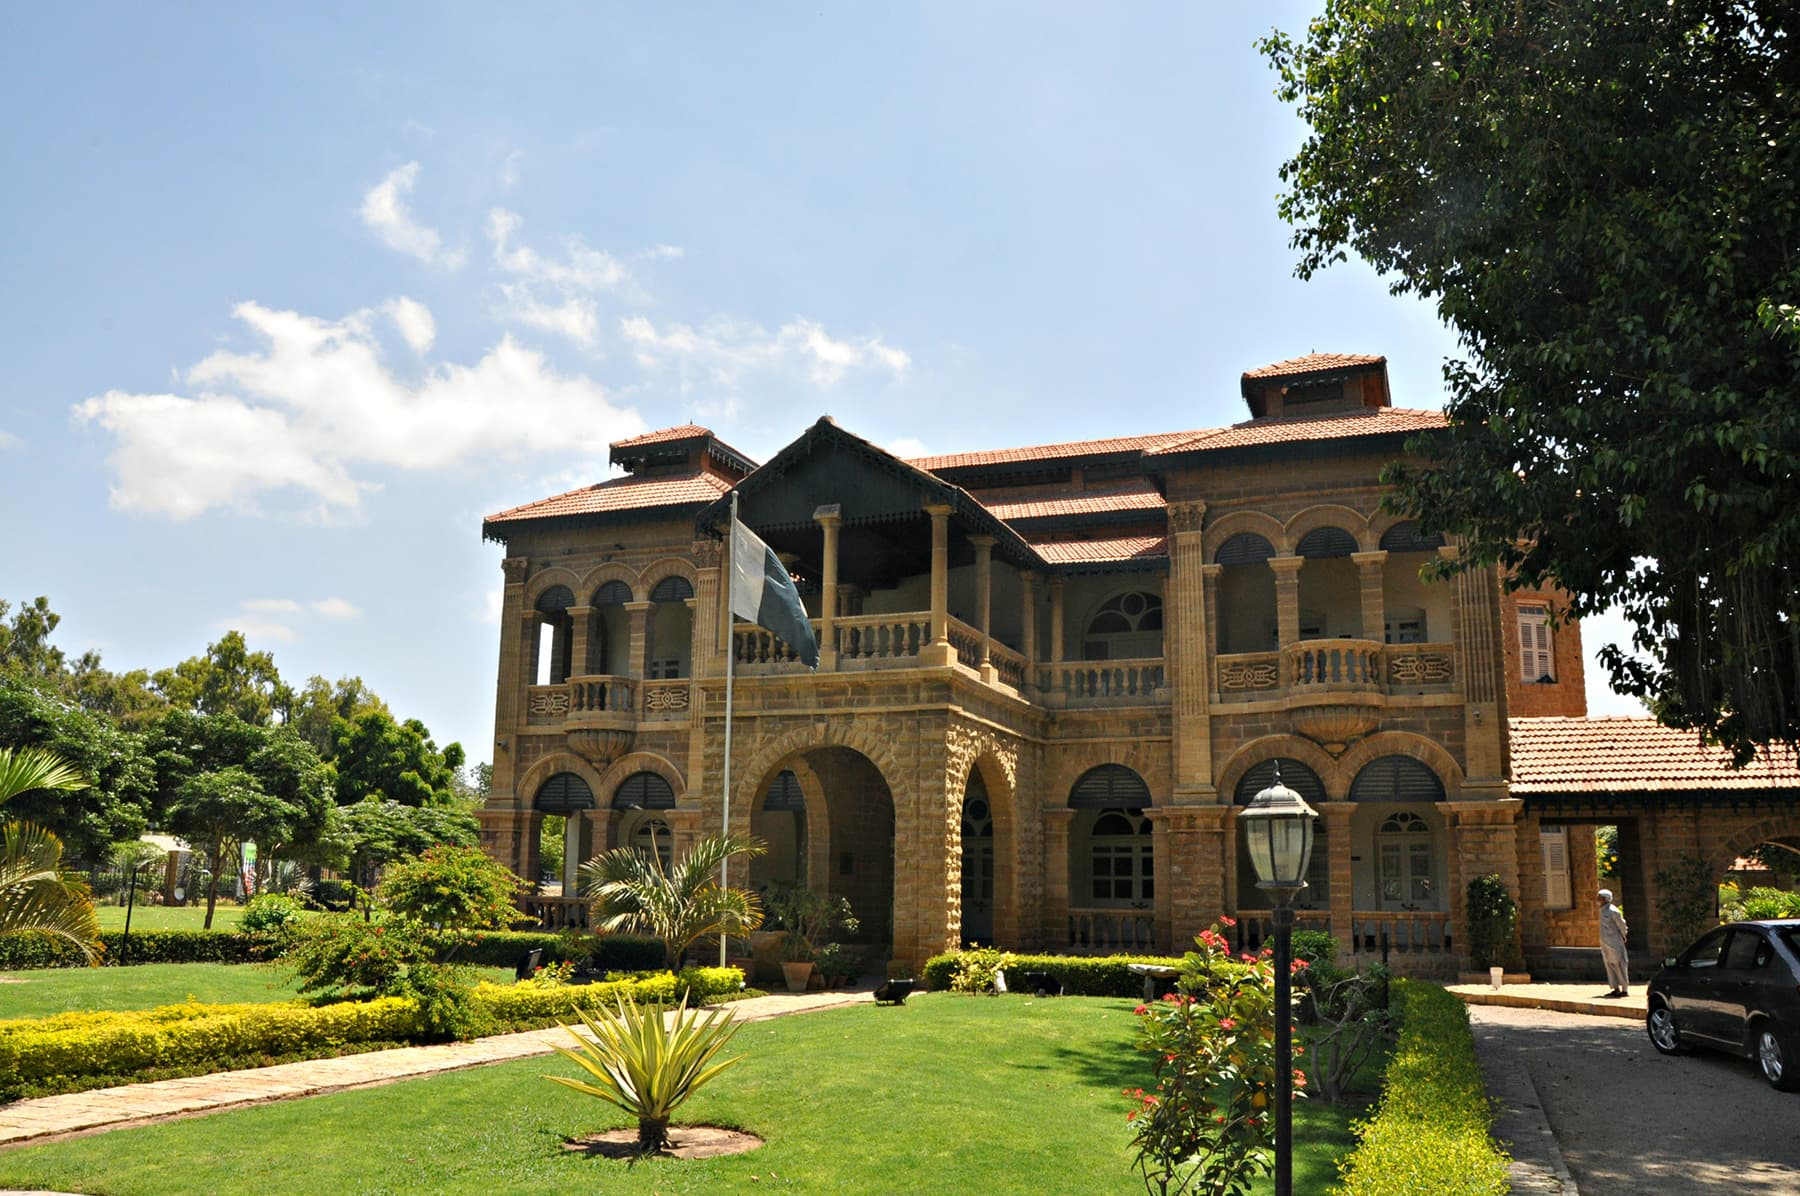 The Flagstaff house is one of the earliest of Moses Somake's work.